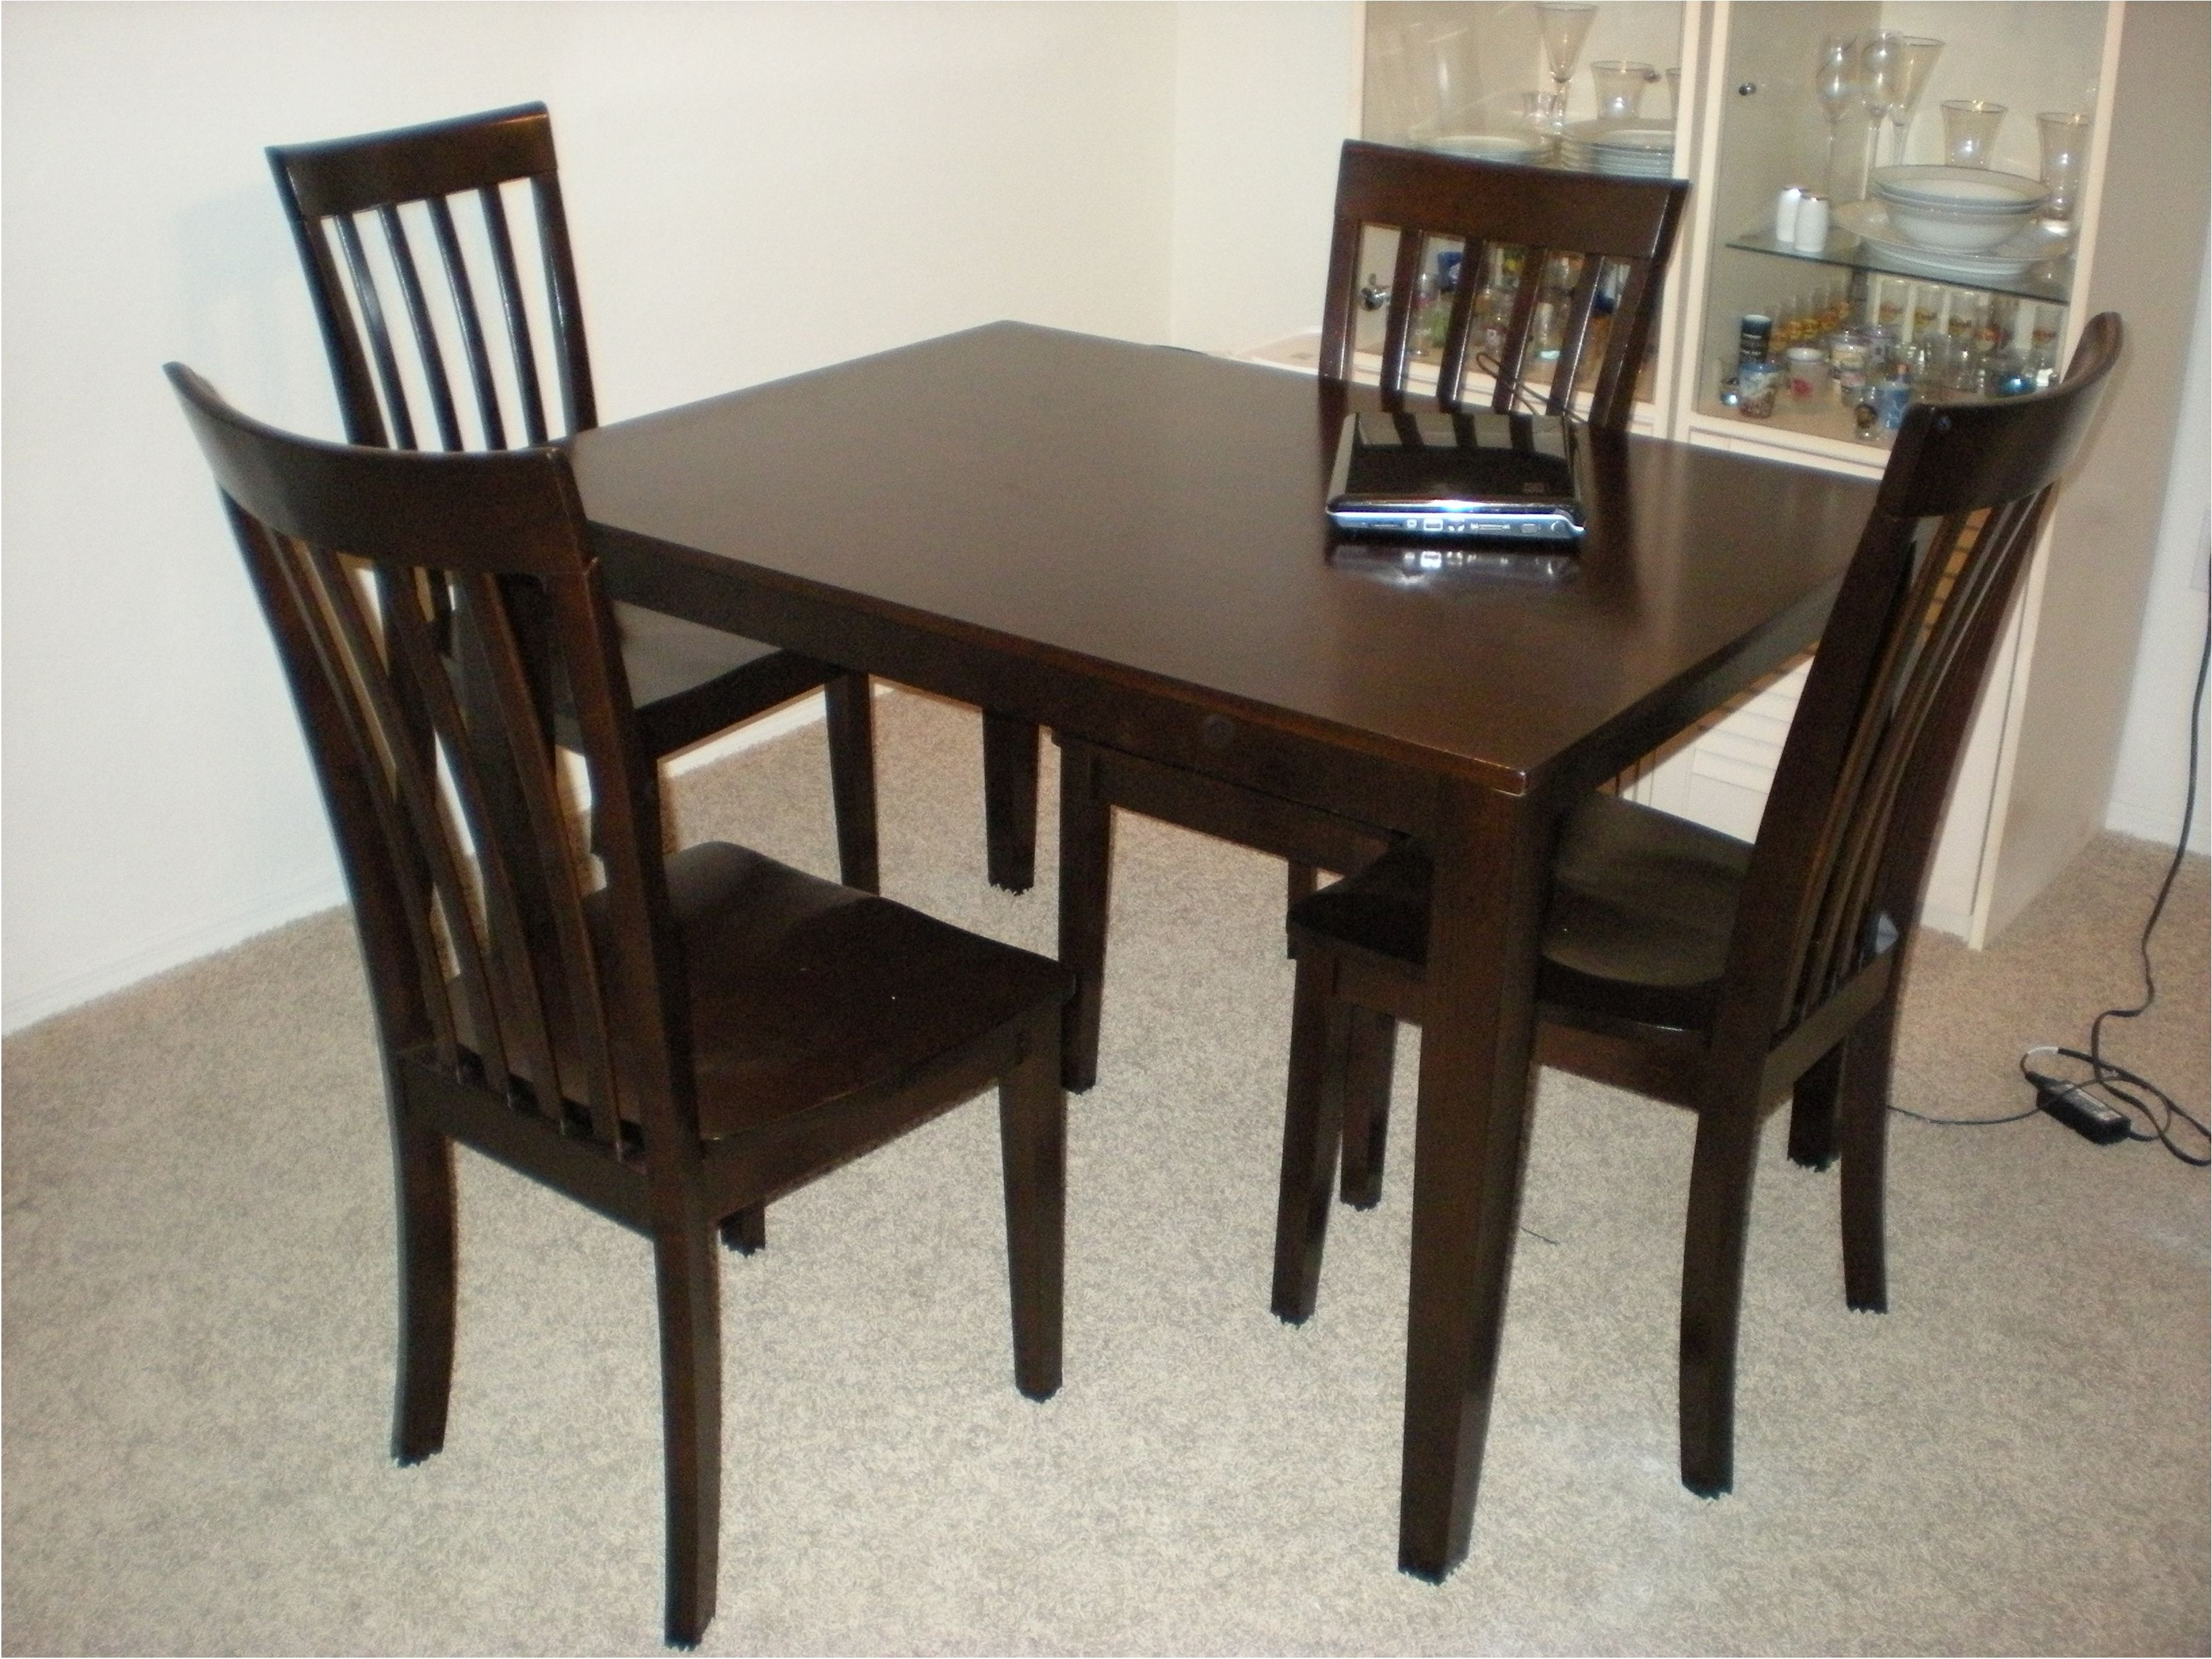 Most Popular Dark Wood Dining Tables For Wonderfull Furniture Green Wooden Small Kitchen Chair Black Dining (View 19 of 25)